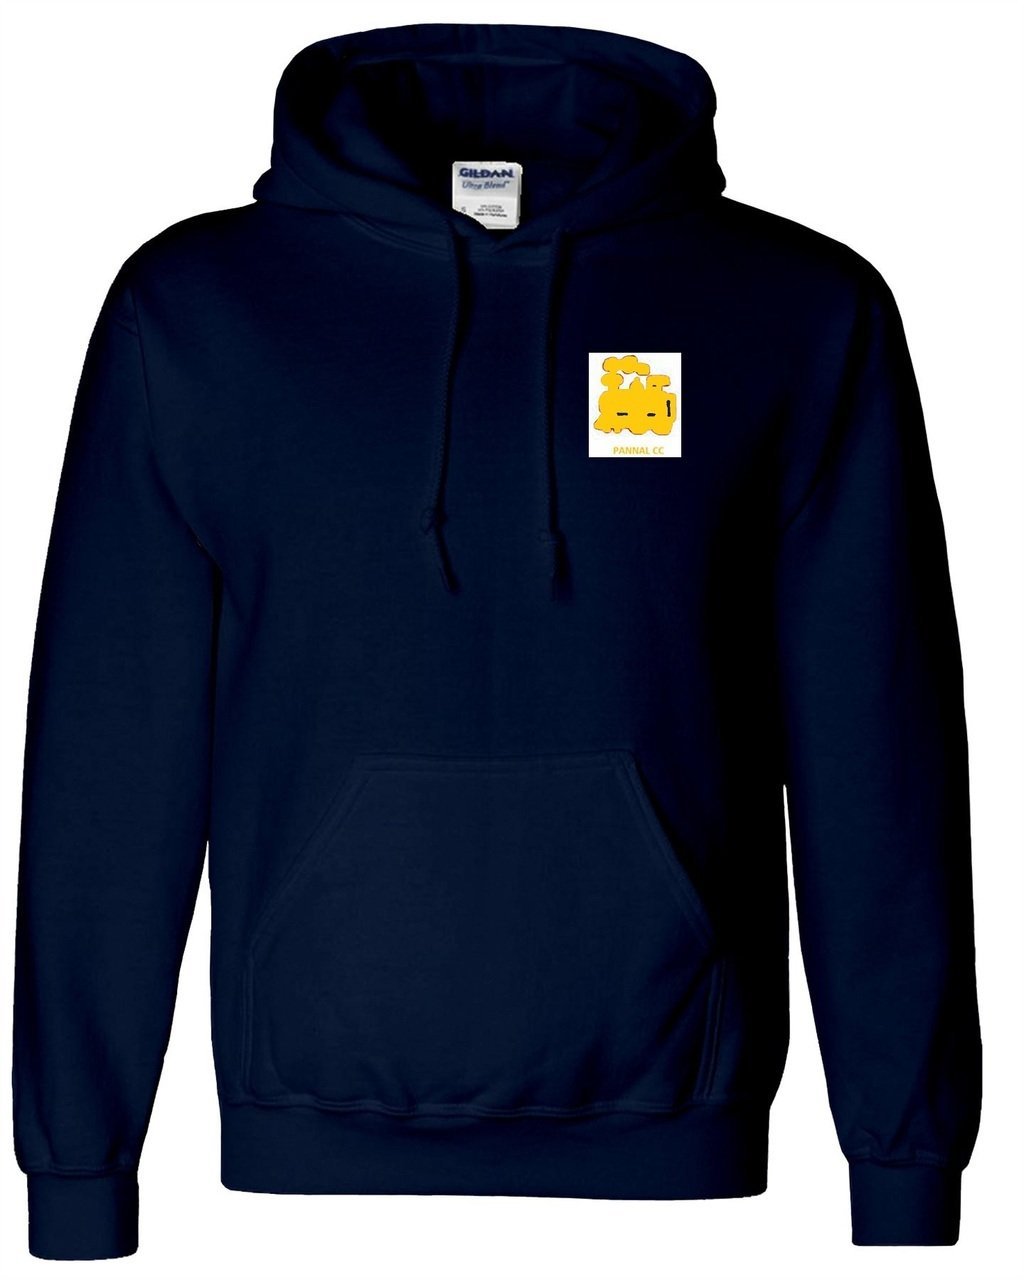 Pannal Senior Navy Hooded Top